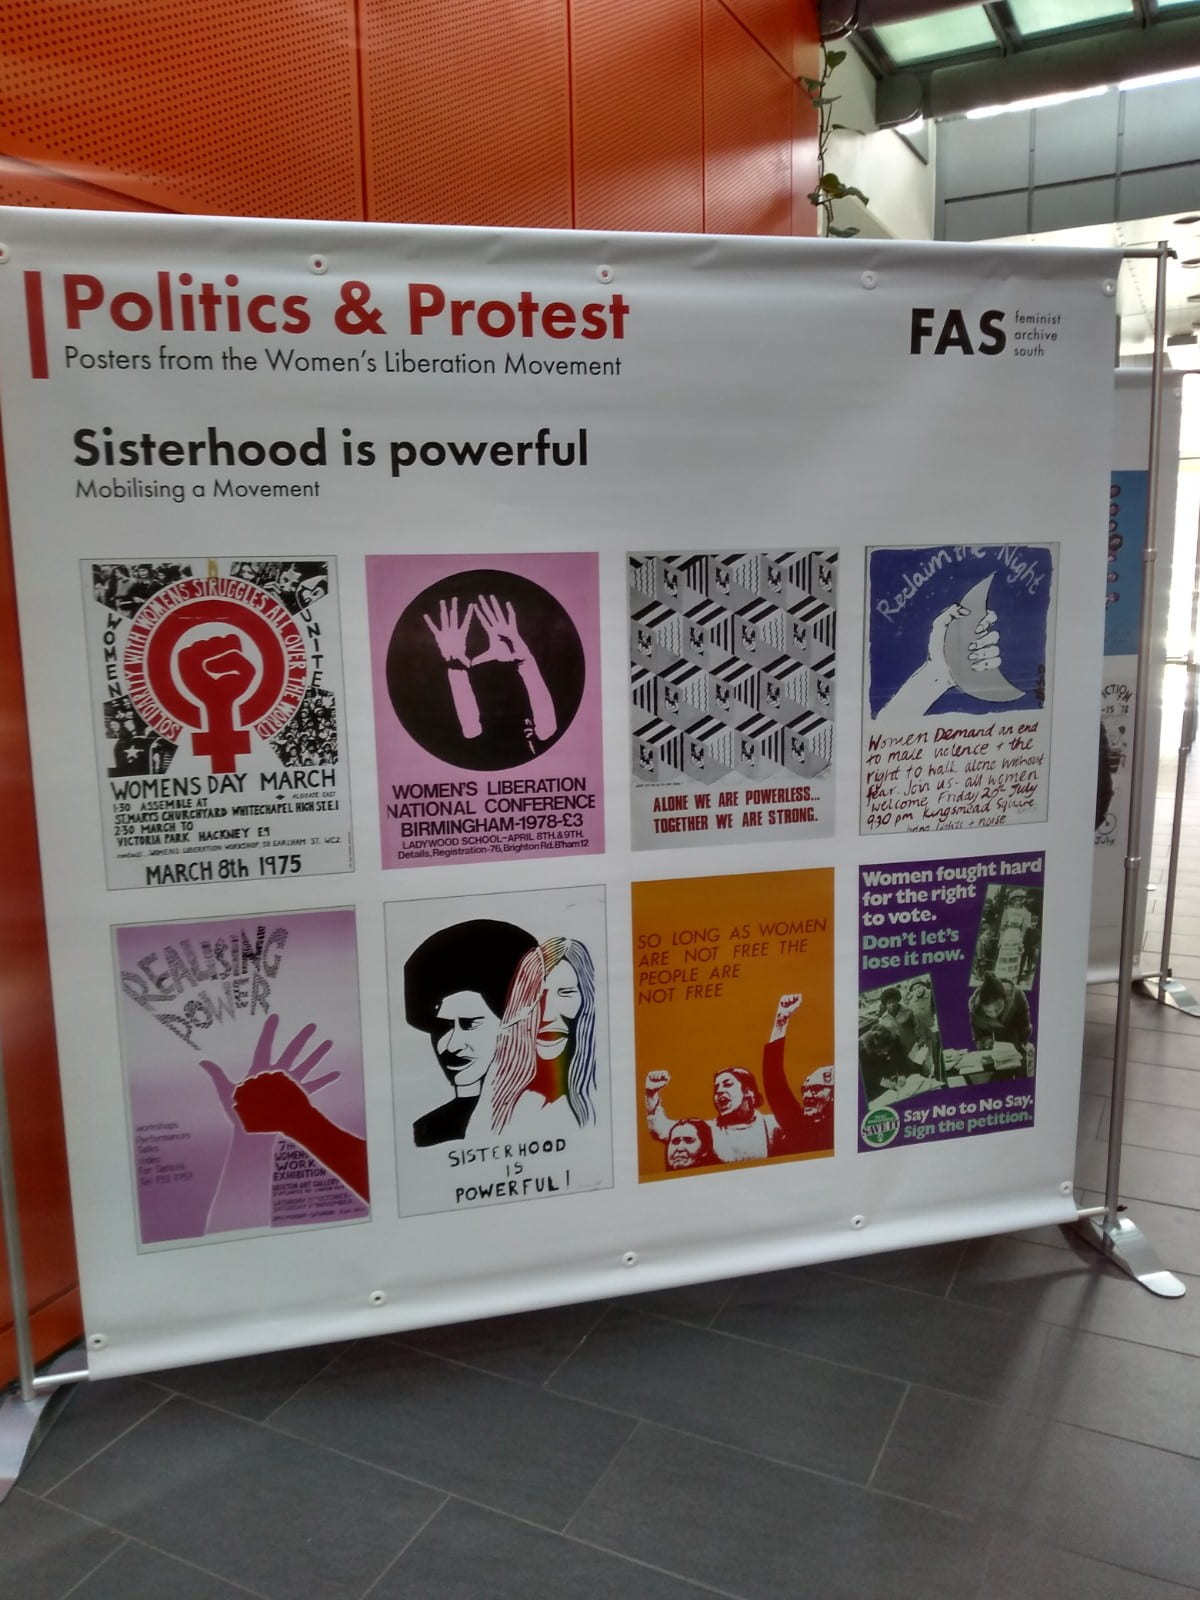 Politics & Protest exhibition banners in the University of Bristol Life Sciences Building.